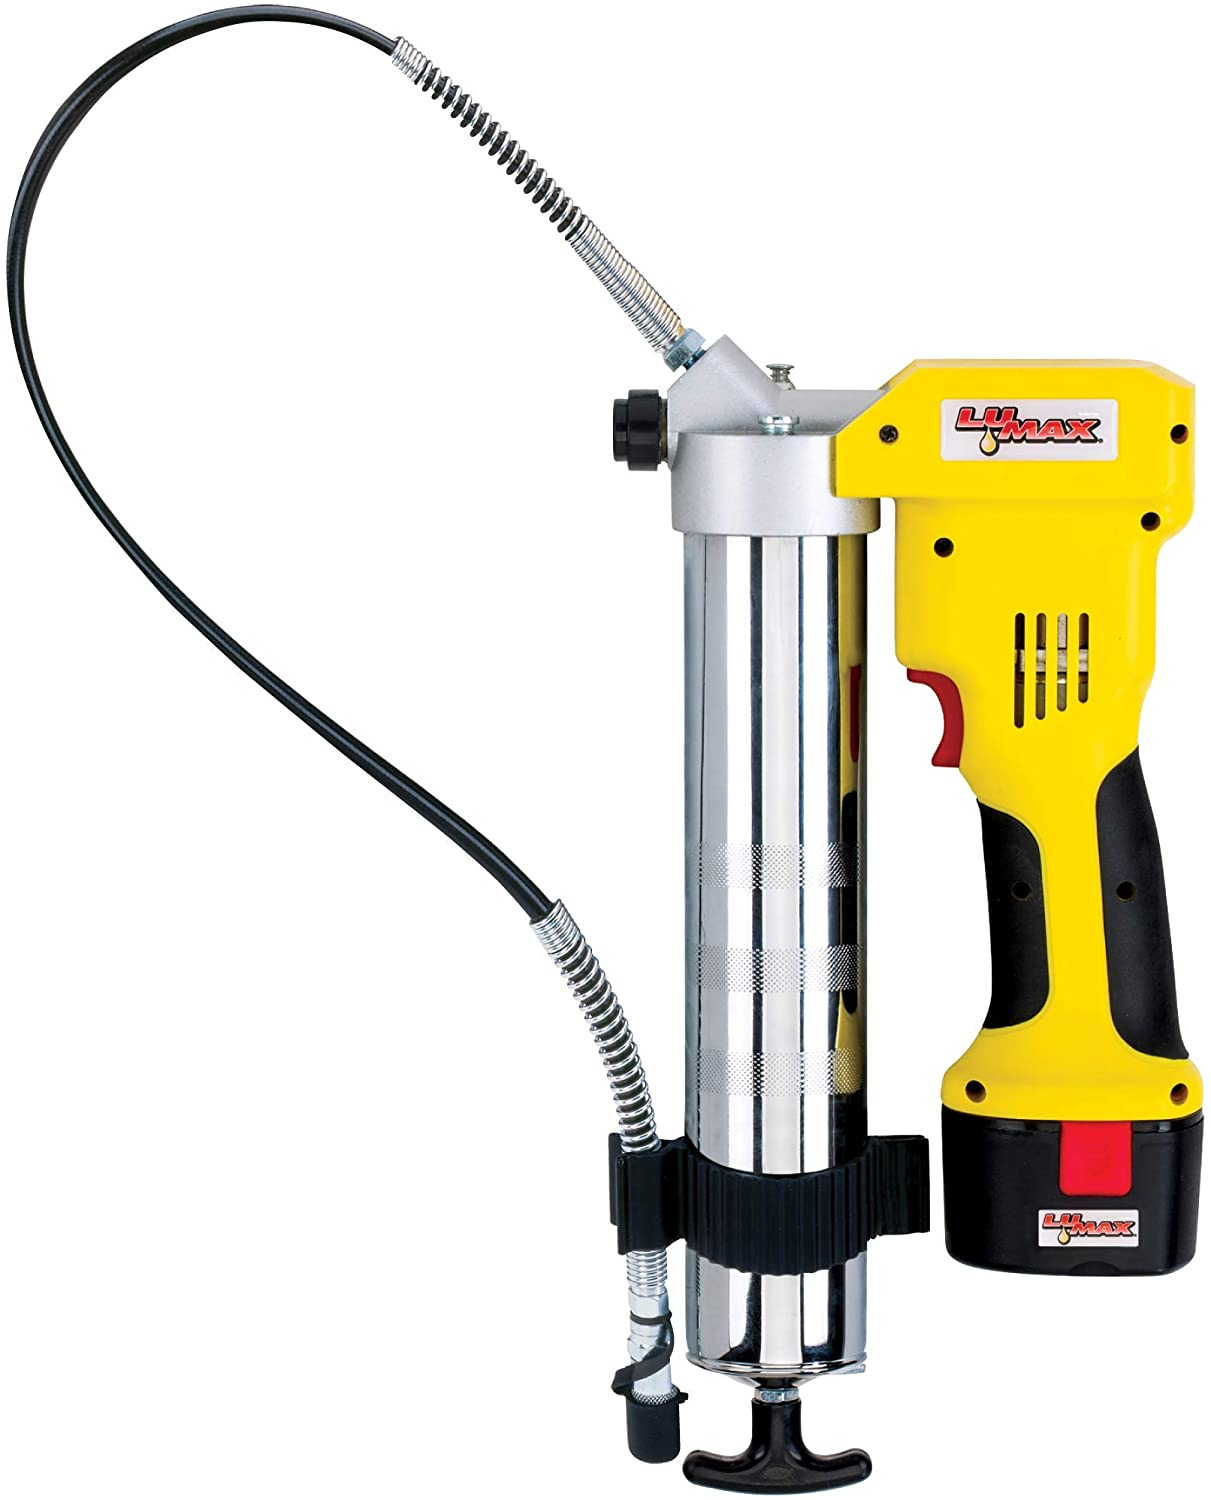 Lumax Max 53% OFF LX-1176 Handyluber 12V Cordless 2 Batterie Gun Popular products with Grease